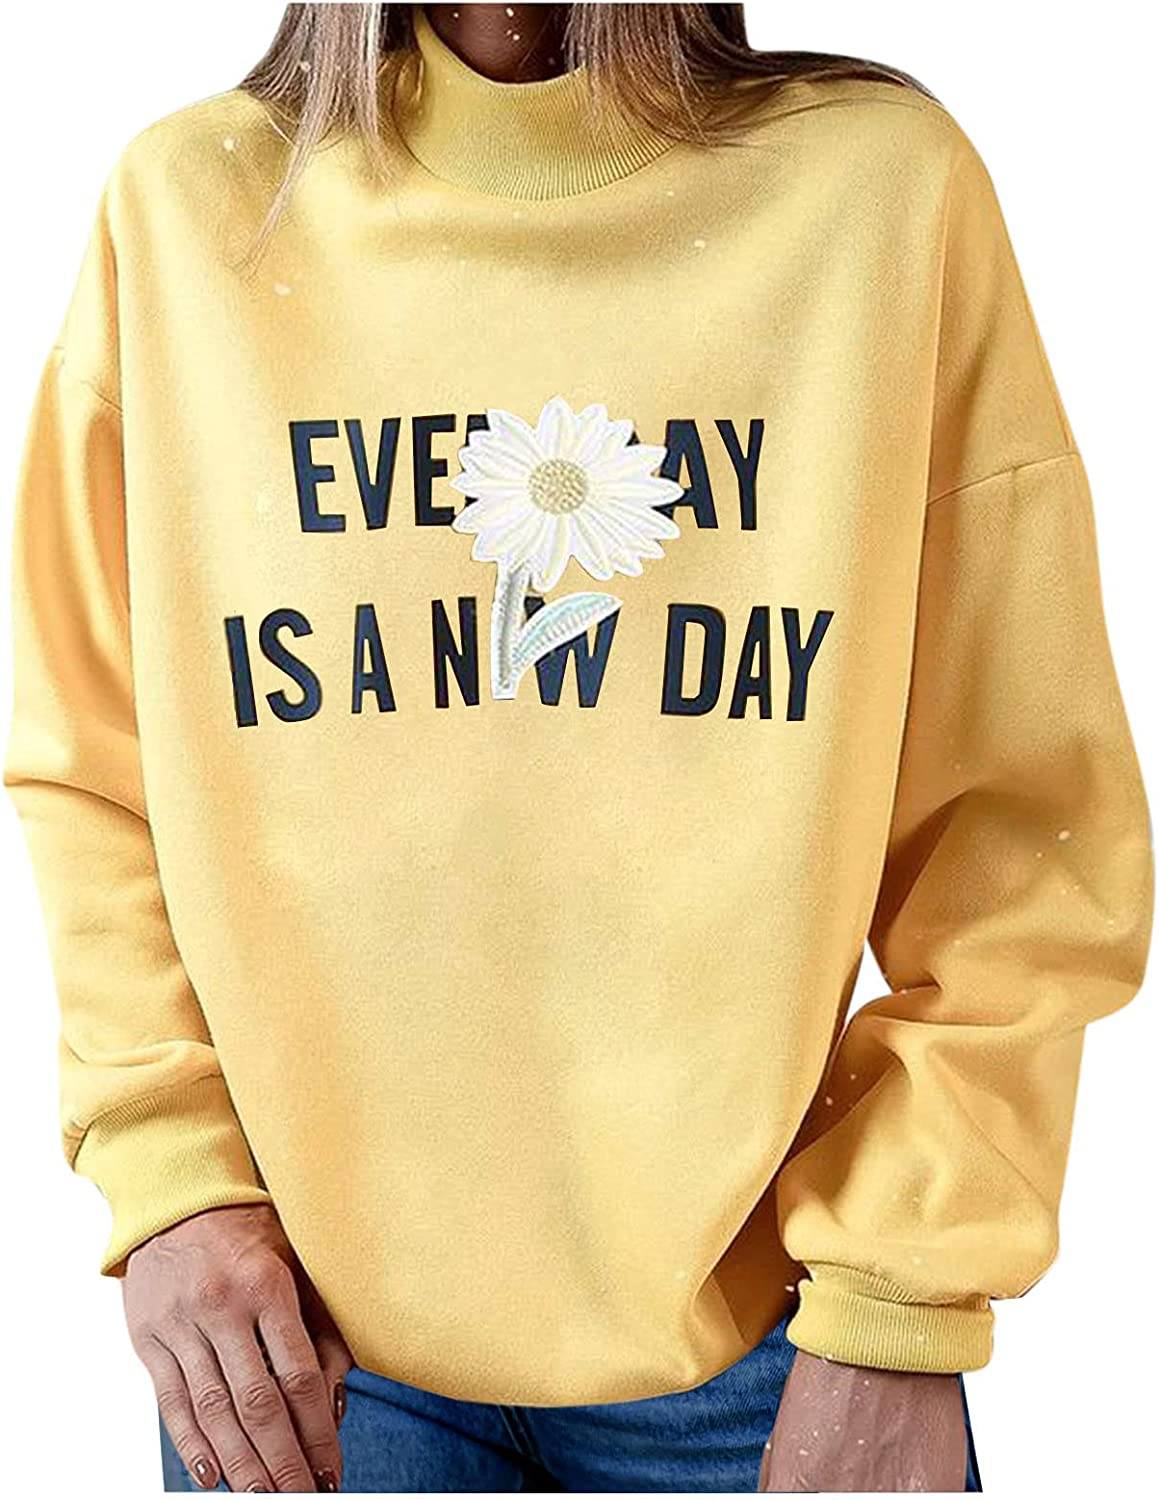 Fall Clothes For Women Clearance,Oversized Sweatshirt for Women,Women's Vintage Graphic Round Neck Long Sleeve Sweatshirt Casual Loose Fitting Pullover Tops